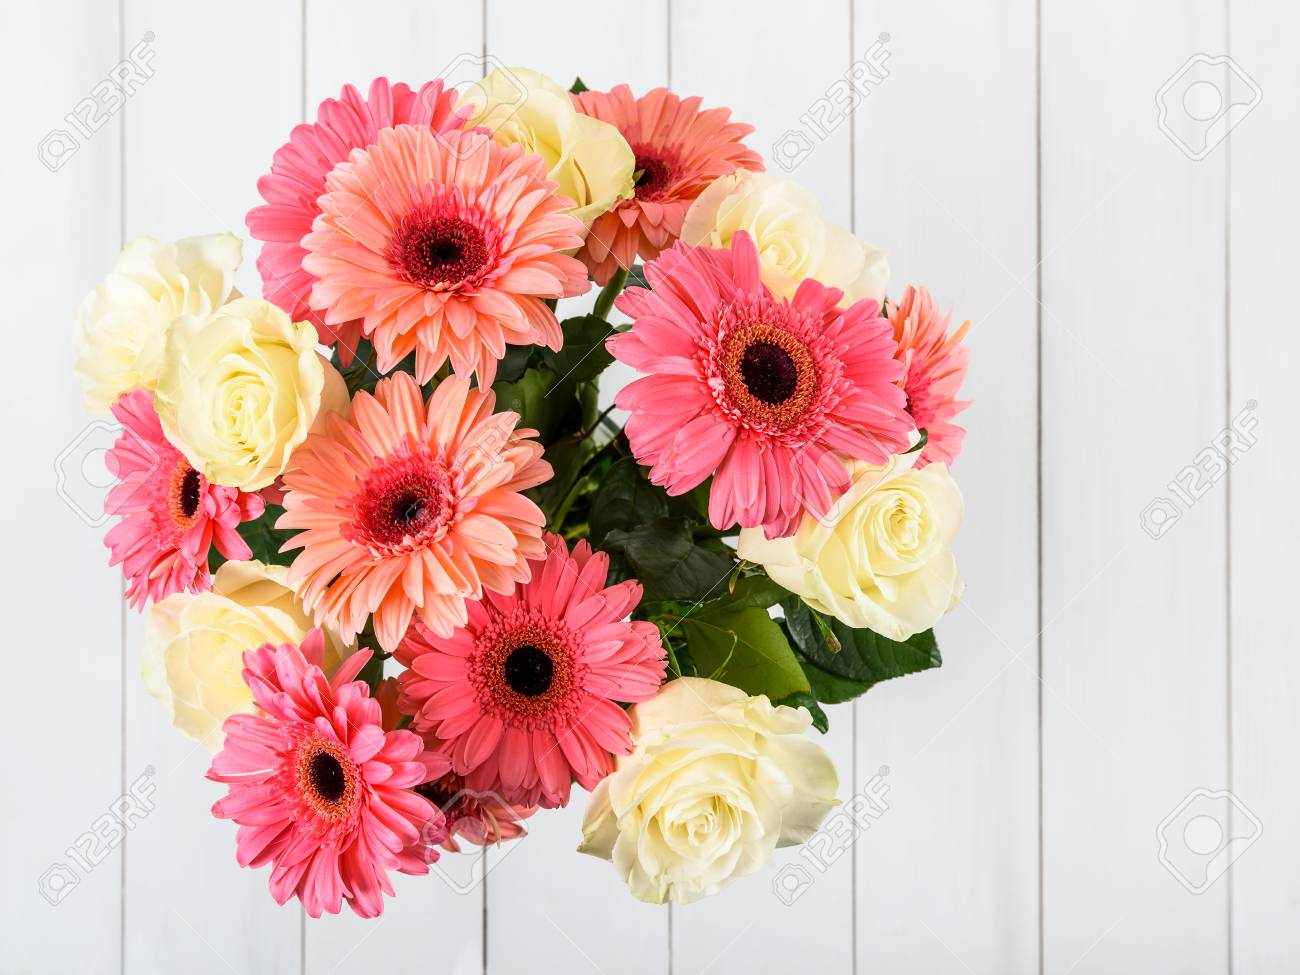 Pink Gerbera Daisy Flowers And White Roses Bouquet Stock Photo